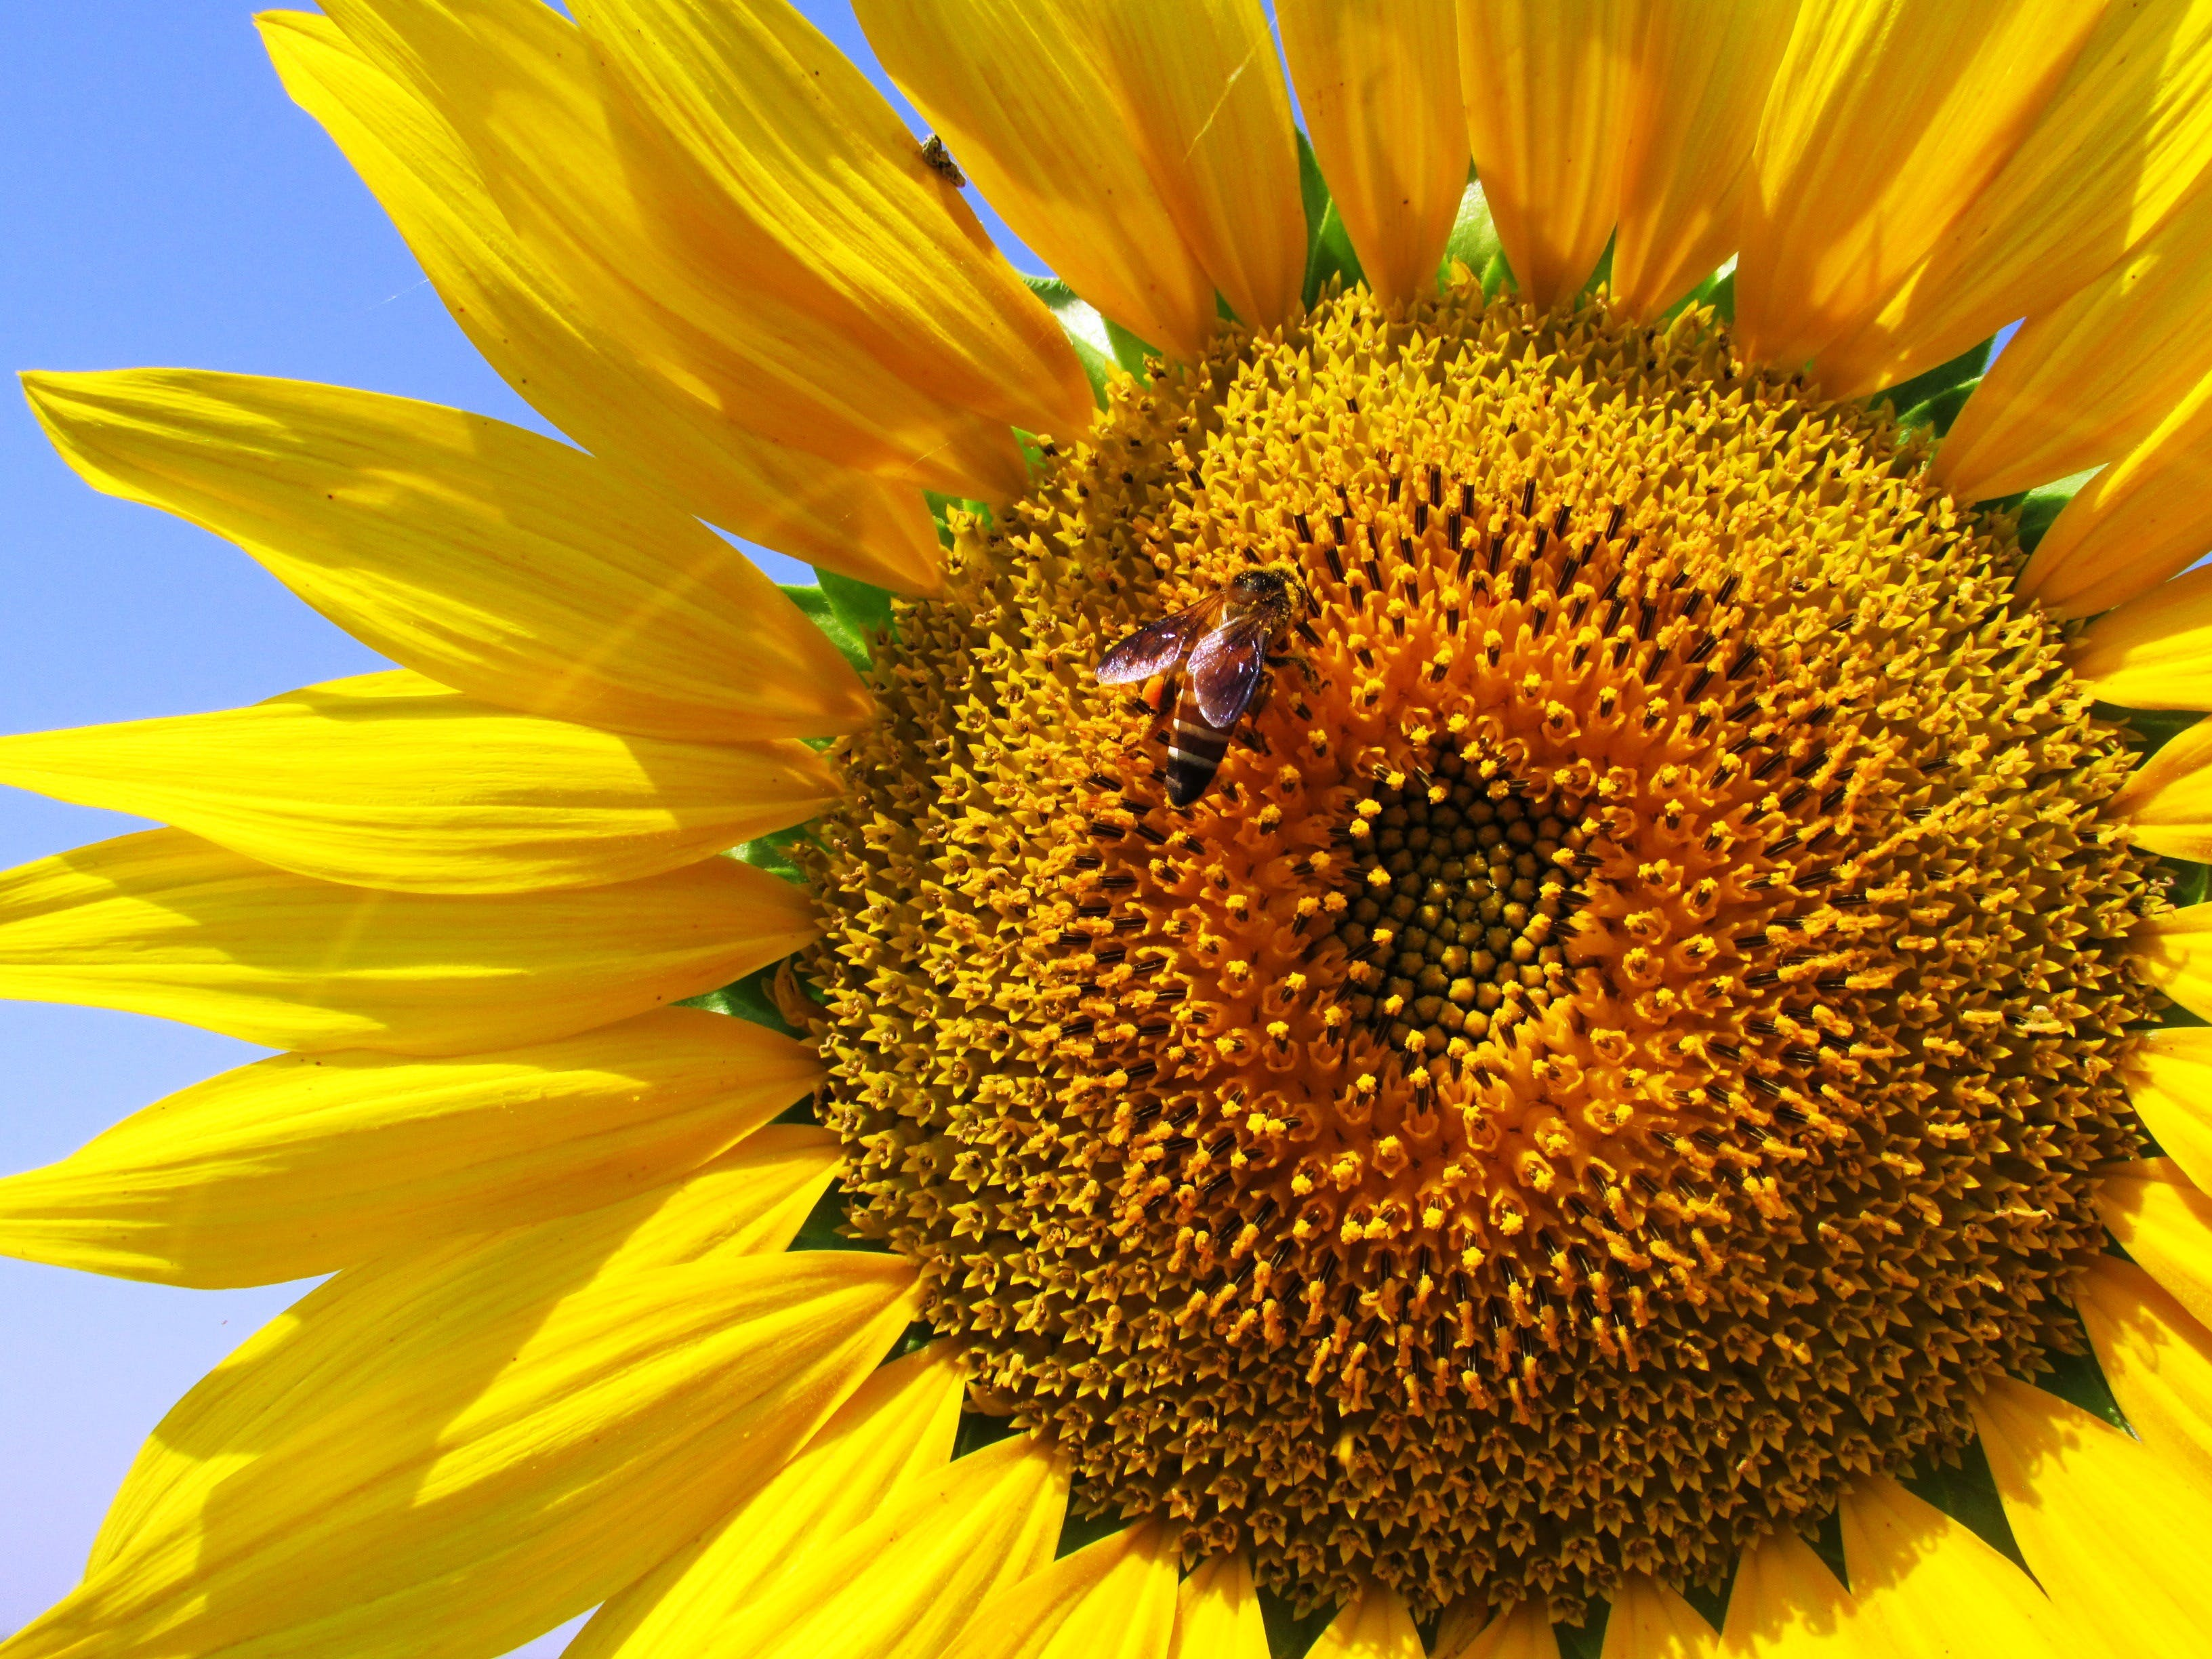 Honeybee on Sunflower during Daytime